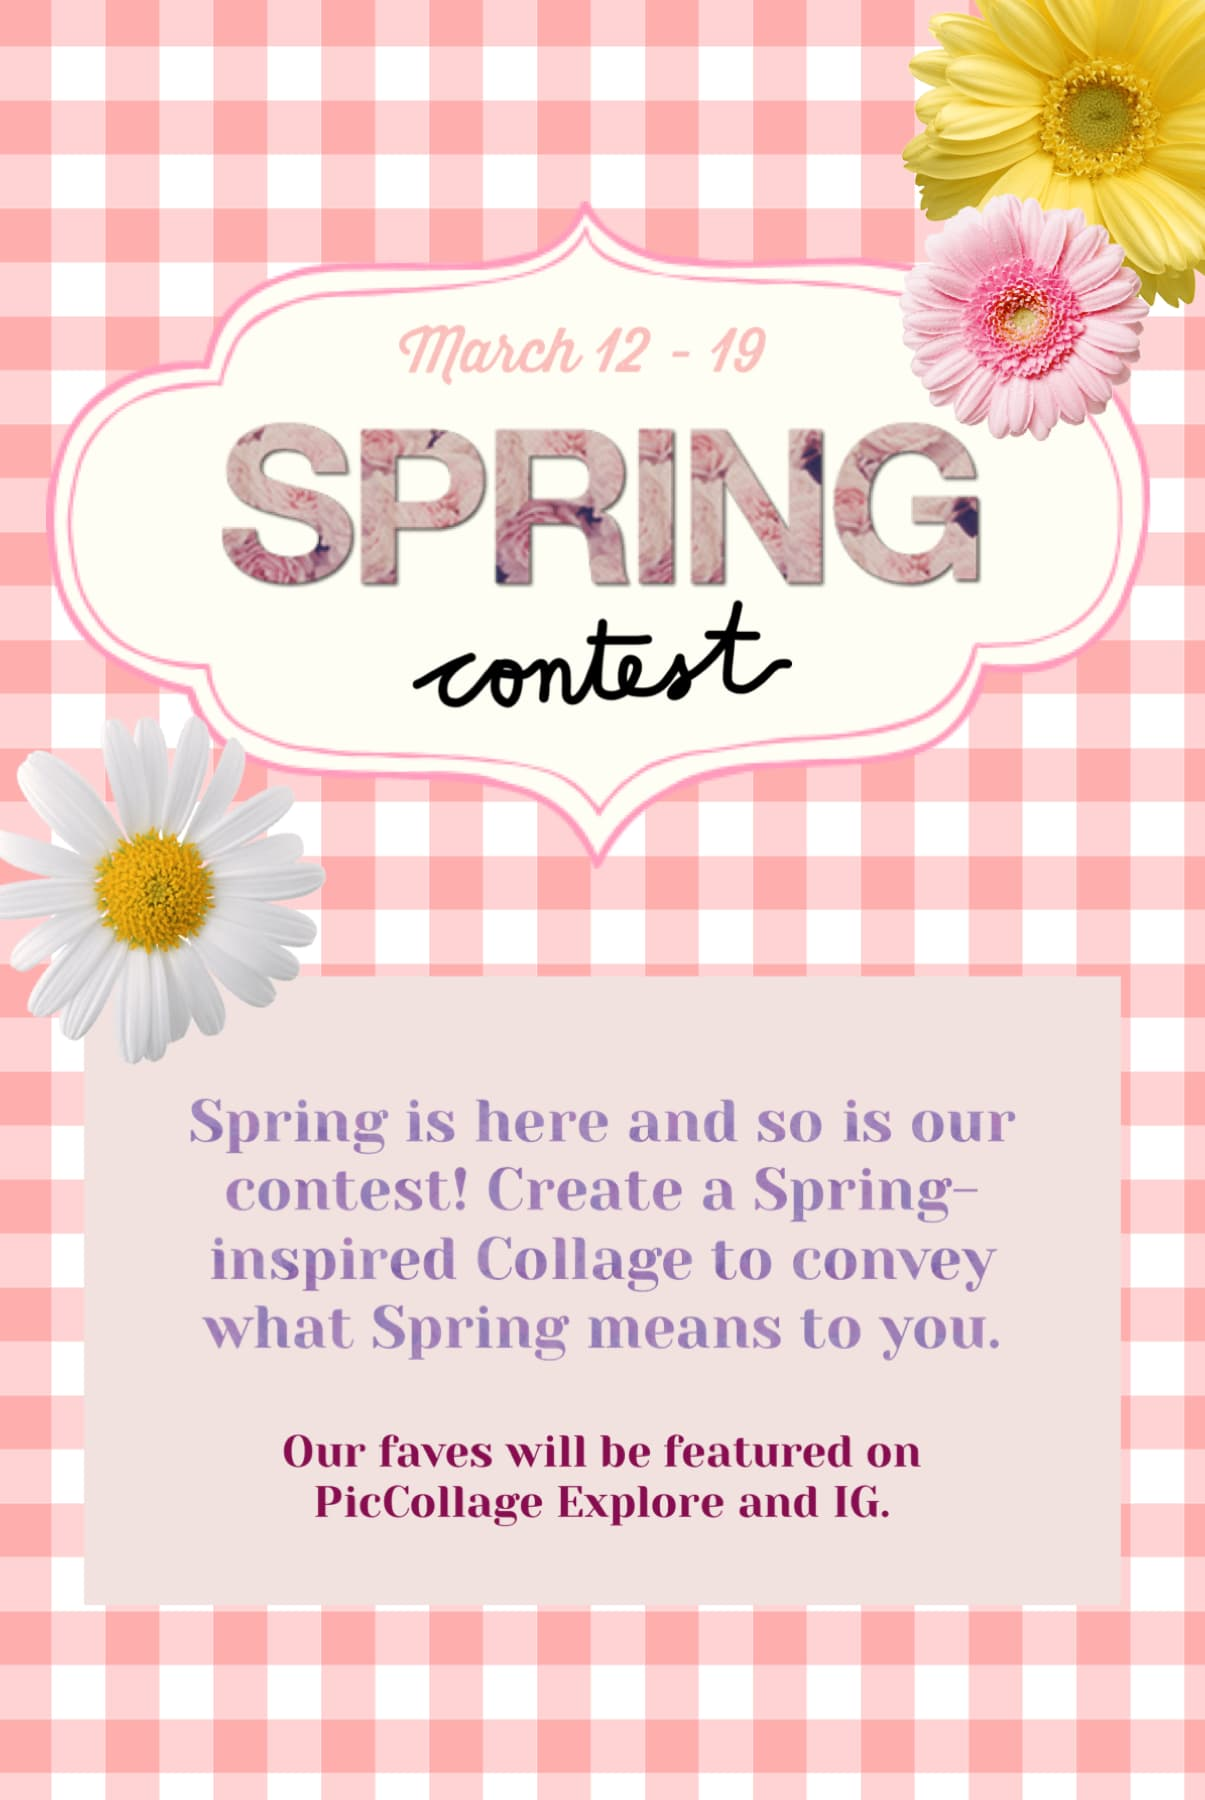 🌸 Spring contest is here! Submit in the remixes by 3/19 Thursday.